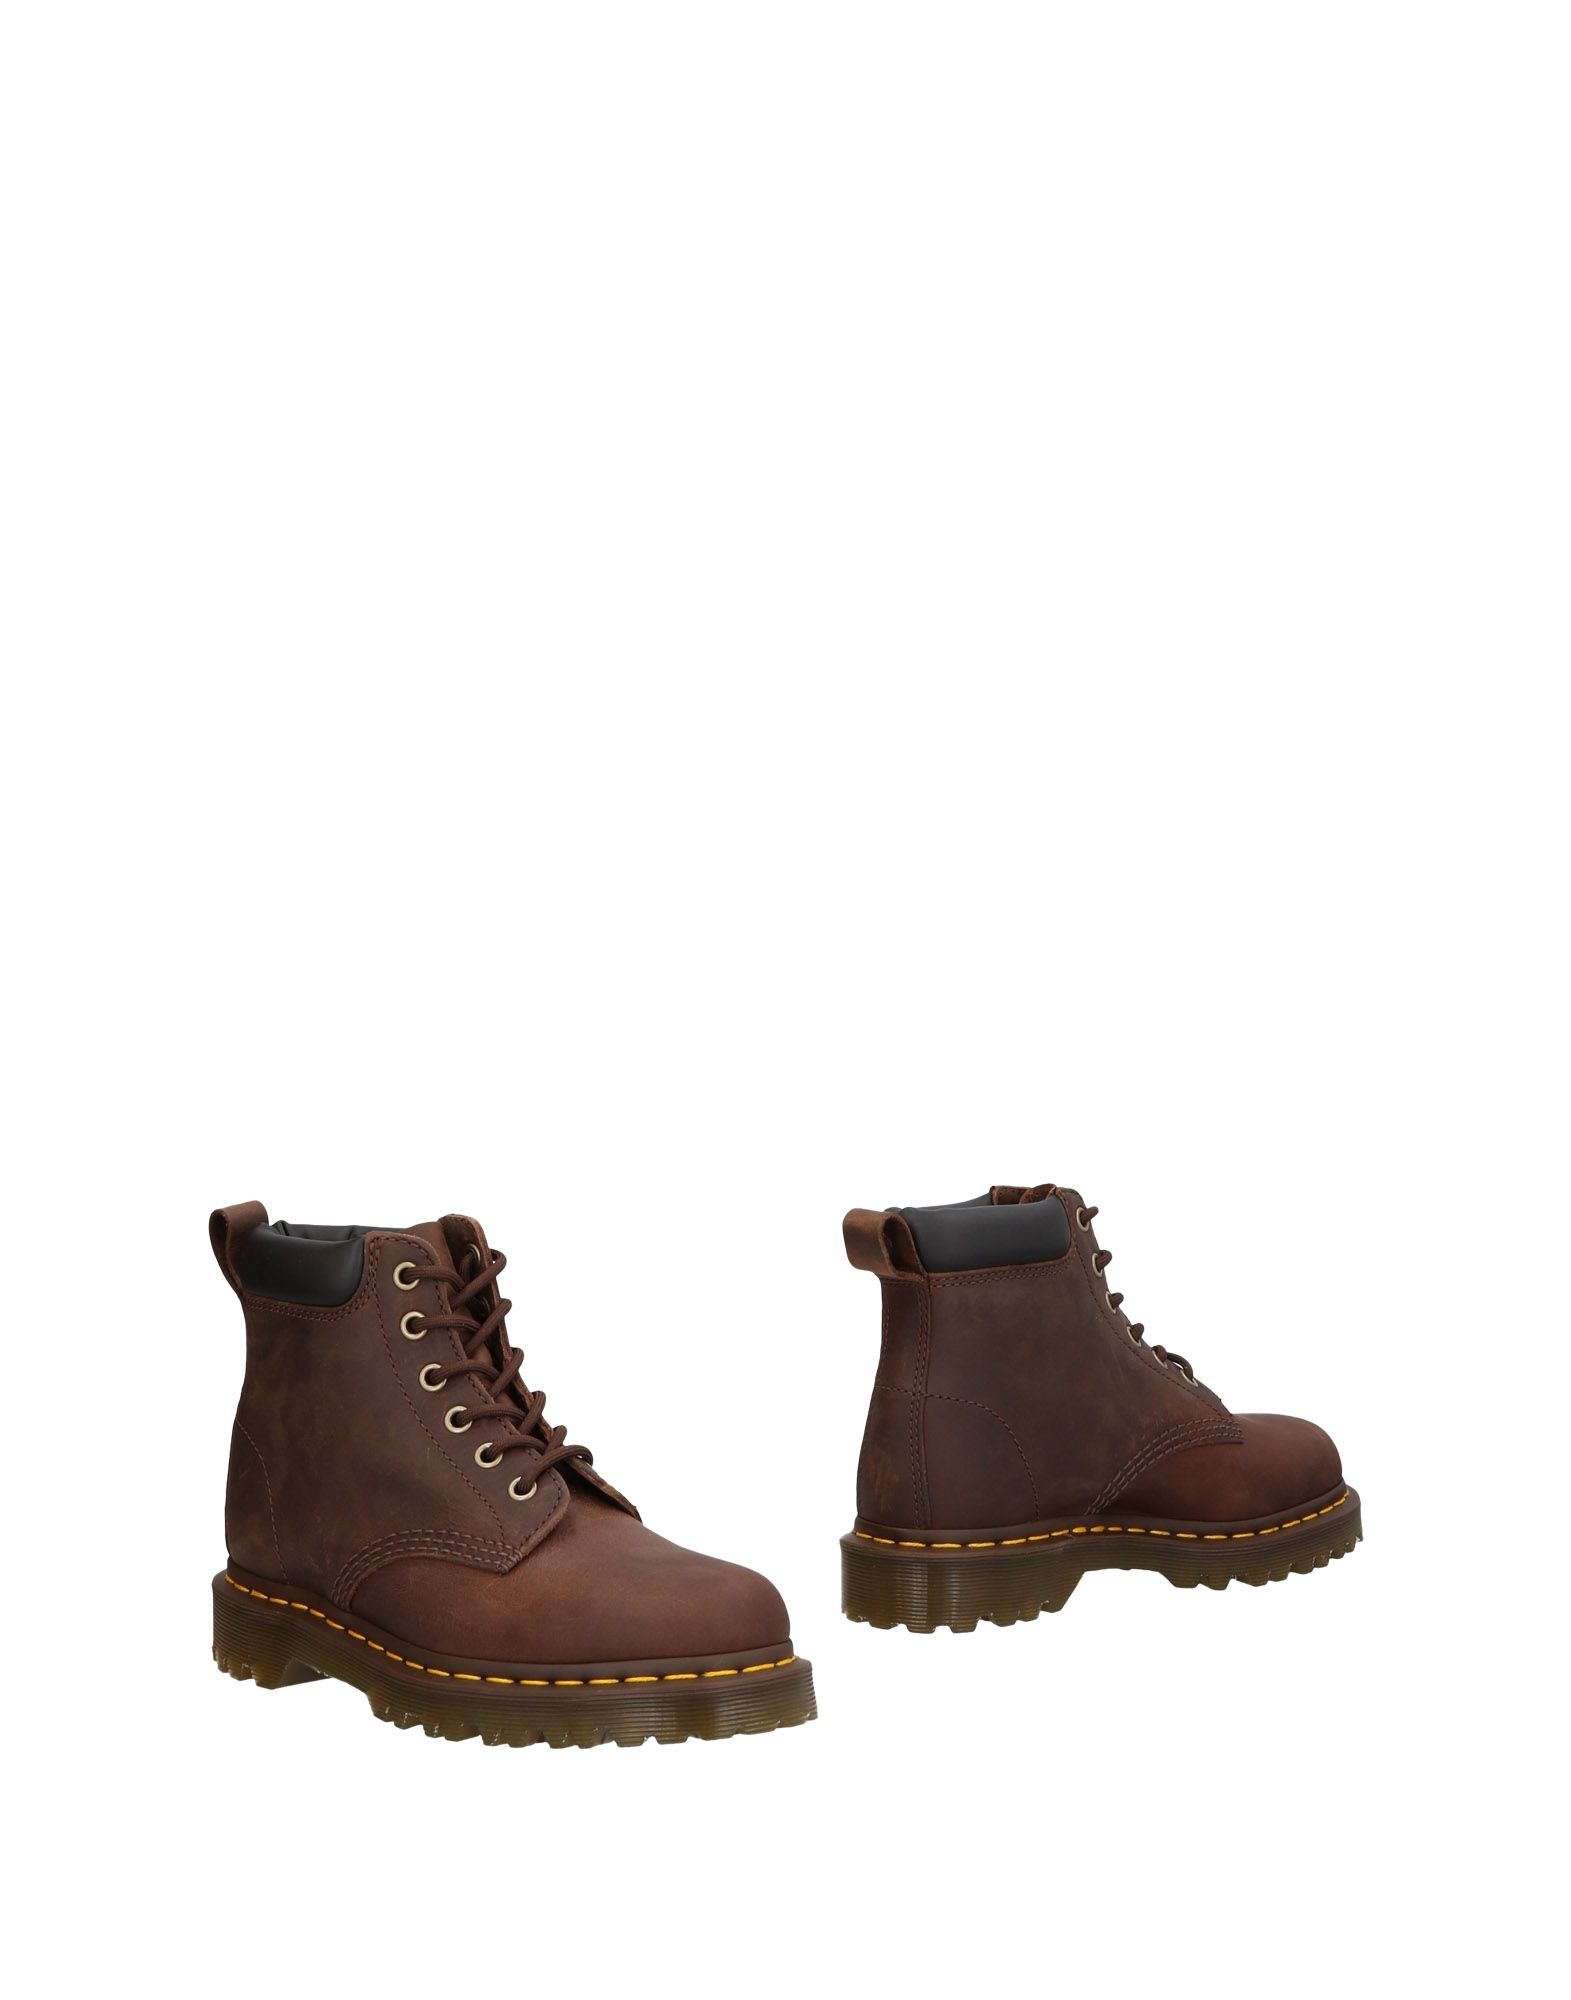 Bottine Dr. Martens Femme - Bottines Dr. Martens Noir Confortable et belle